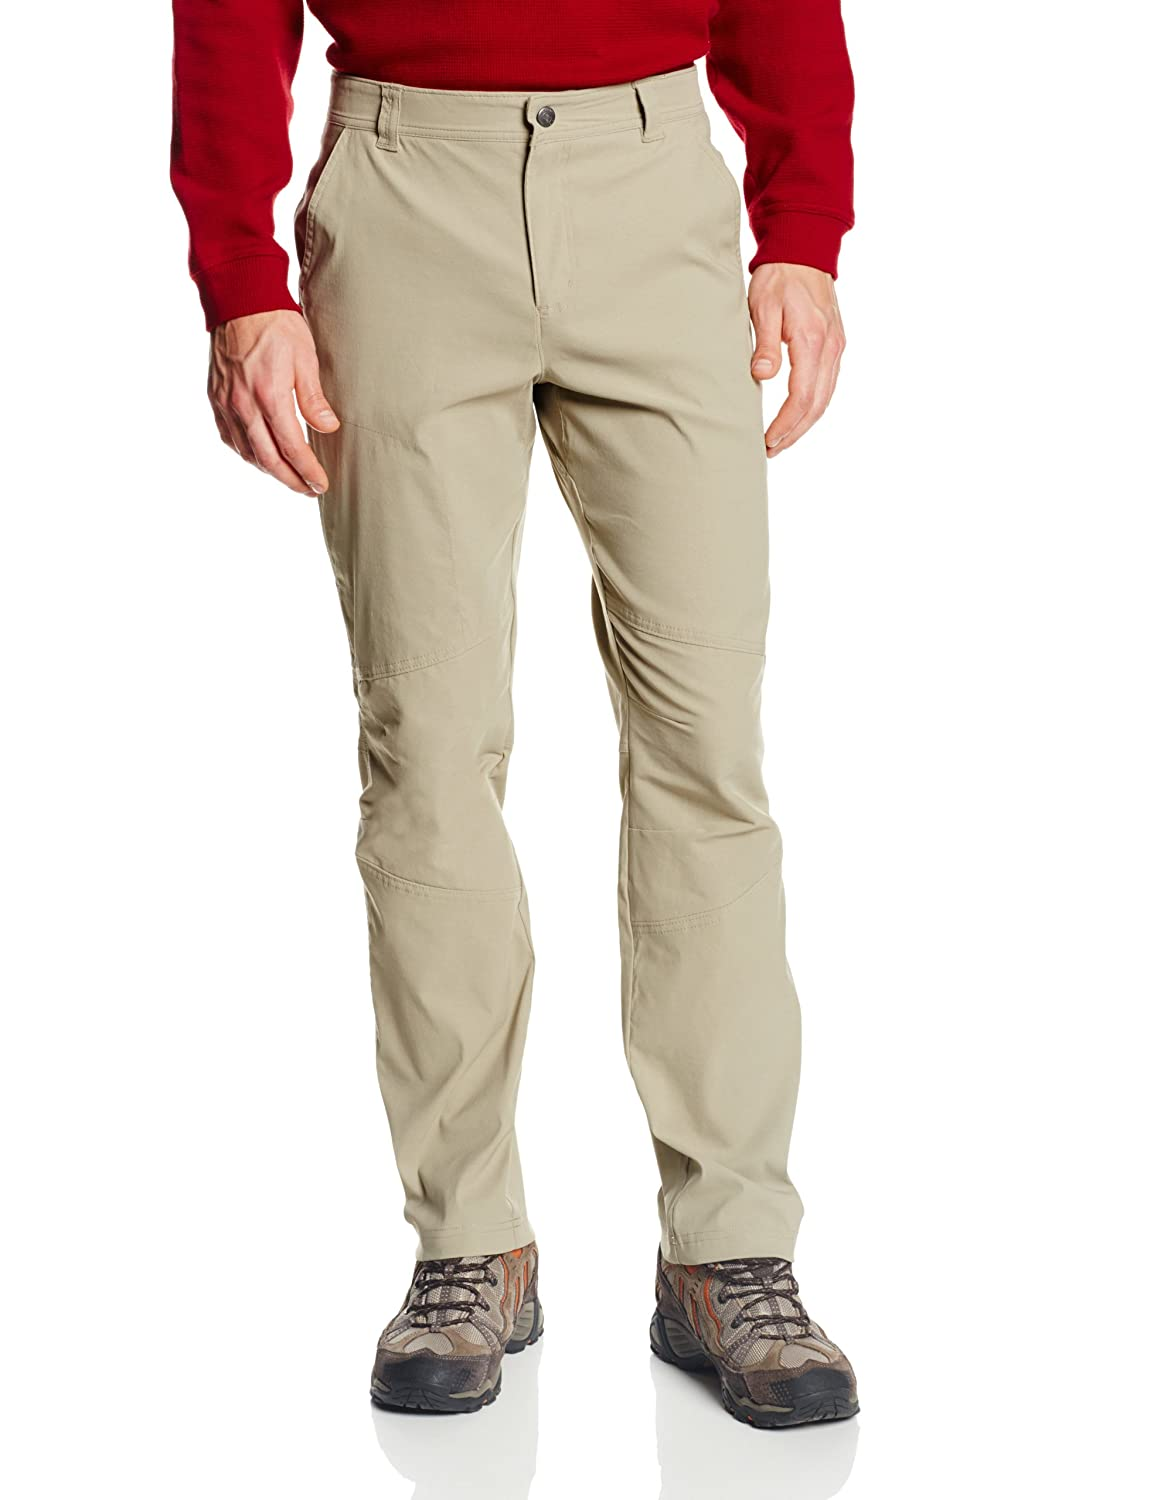 Tusk 30 inches X 30 inches Columbia Men's Royce Peak Sun Pant, Waterproof and Breathable